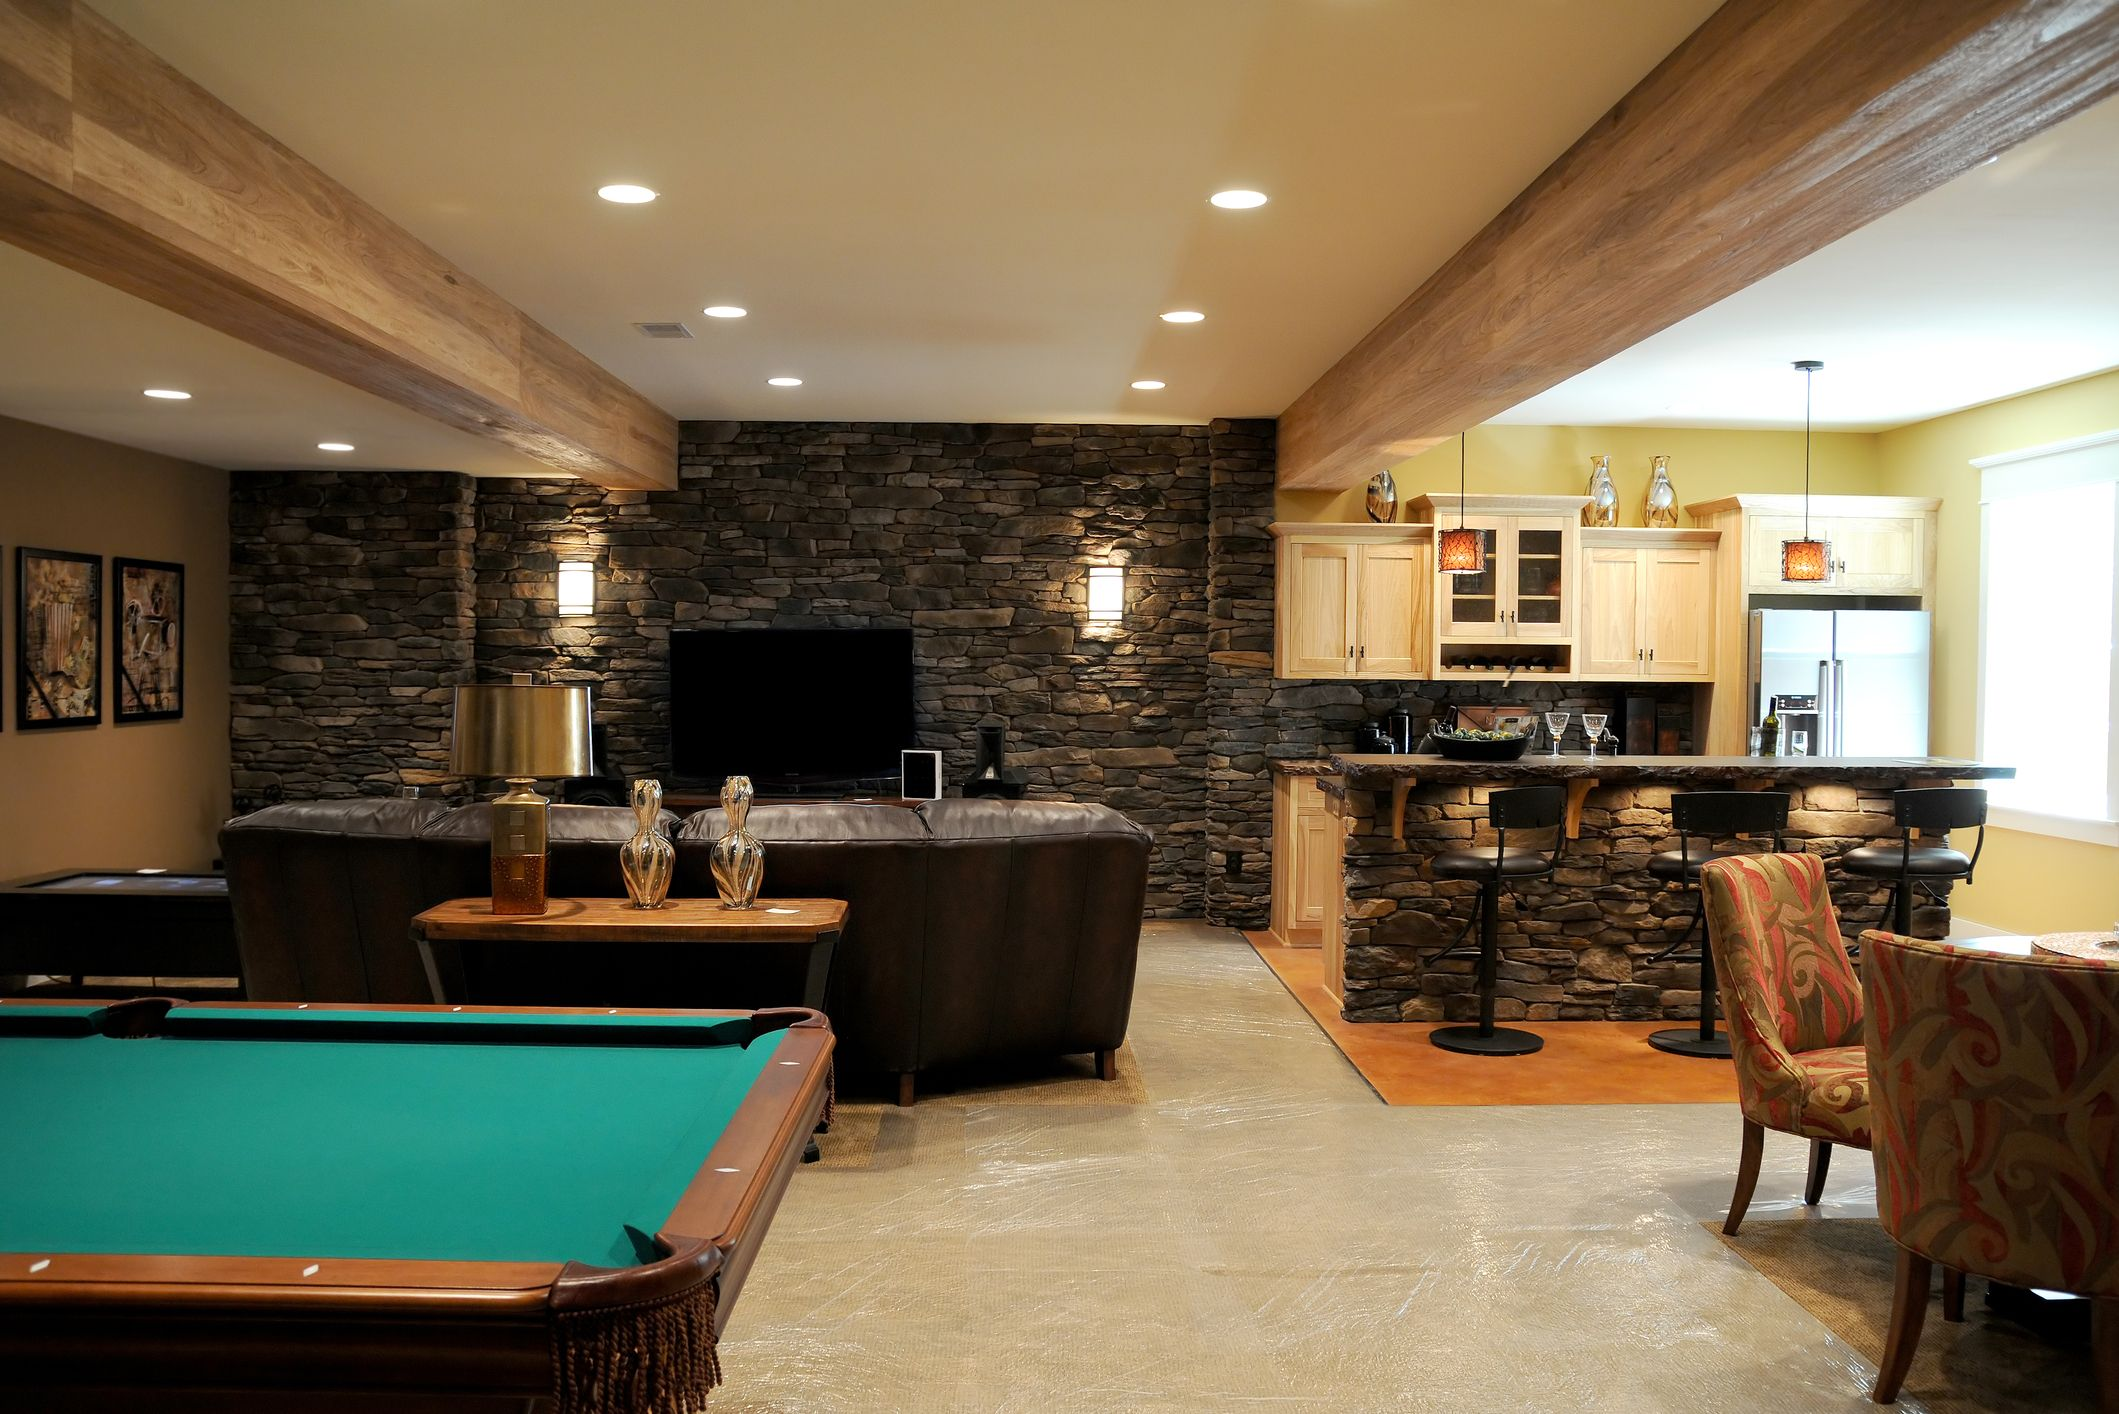 best images about basement remodel on pinterest modern finished basement ideas - Finished Basement Design Ideas